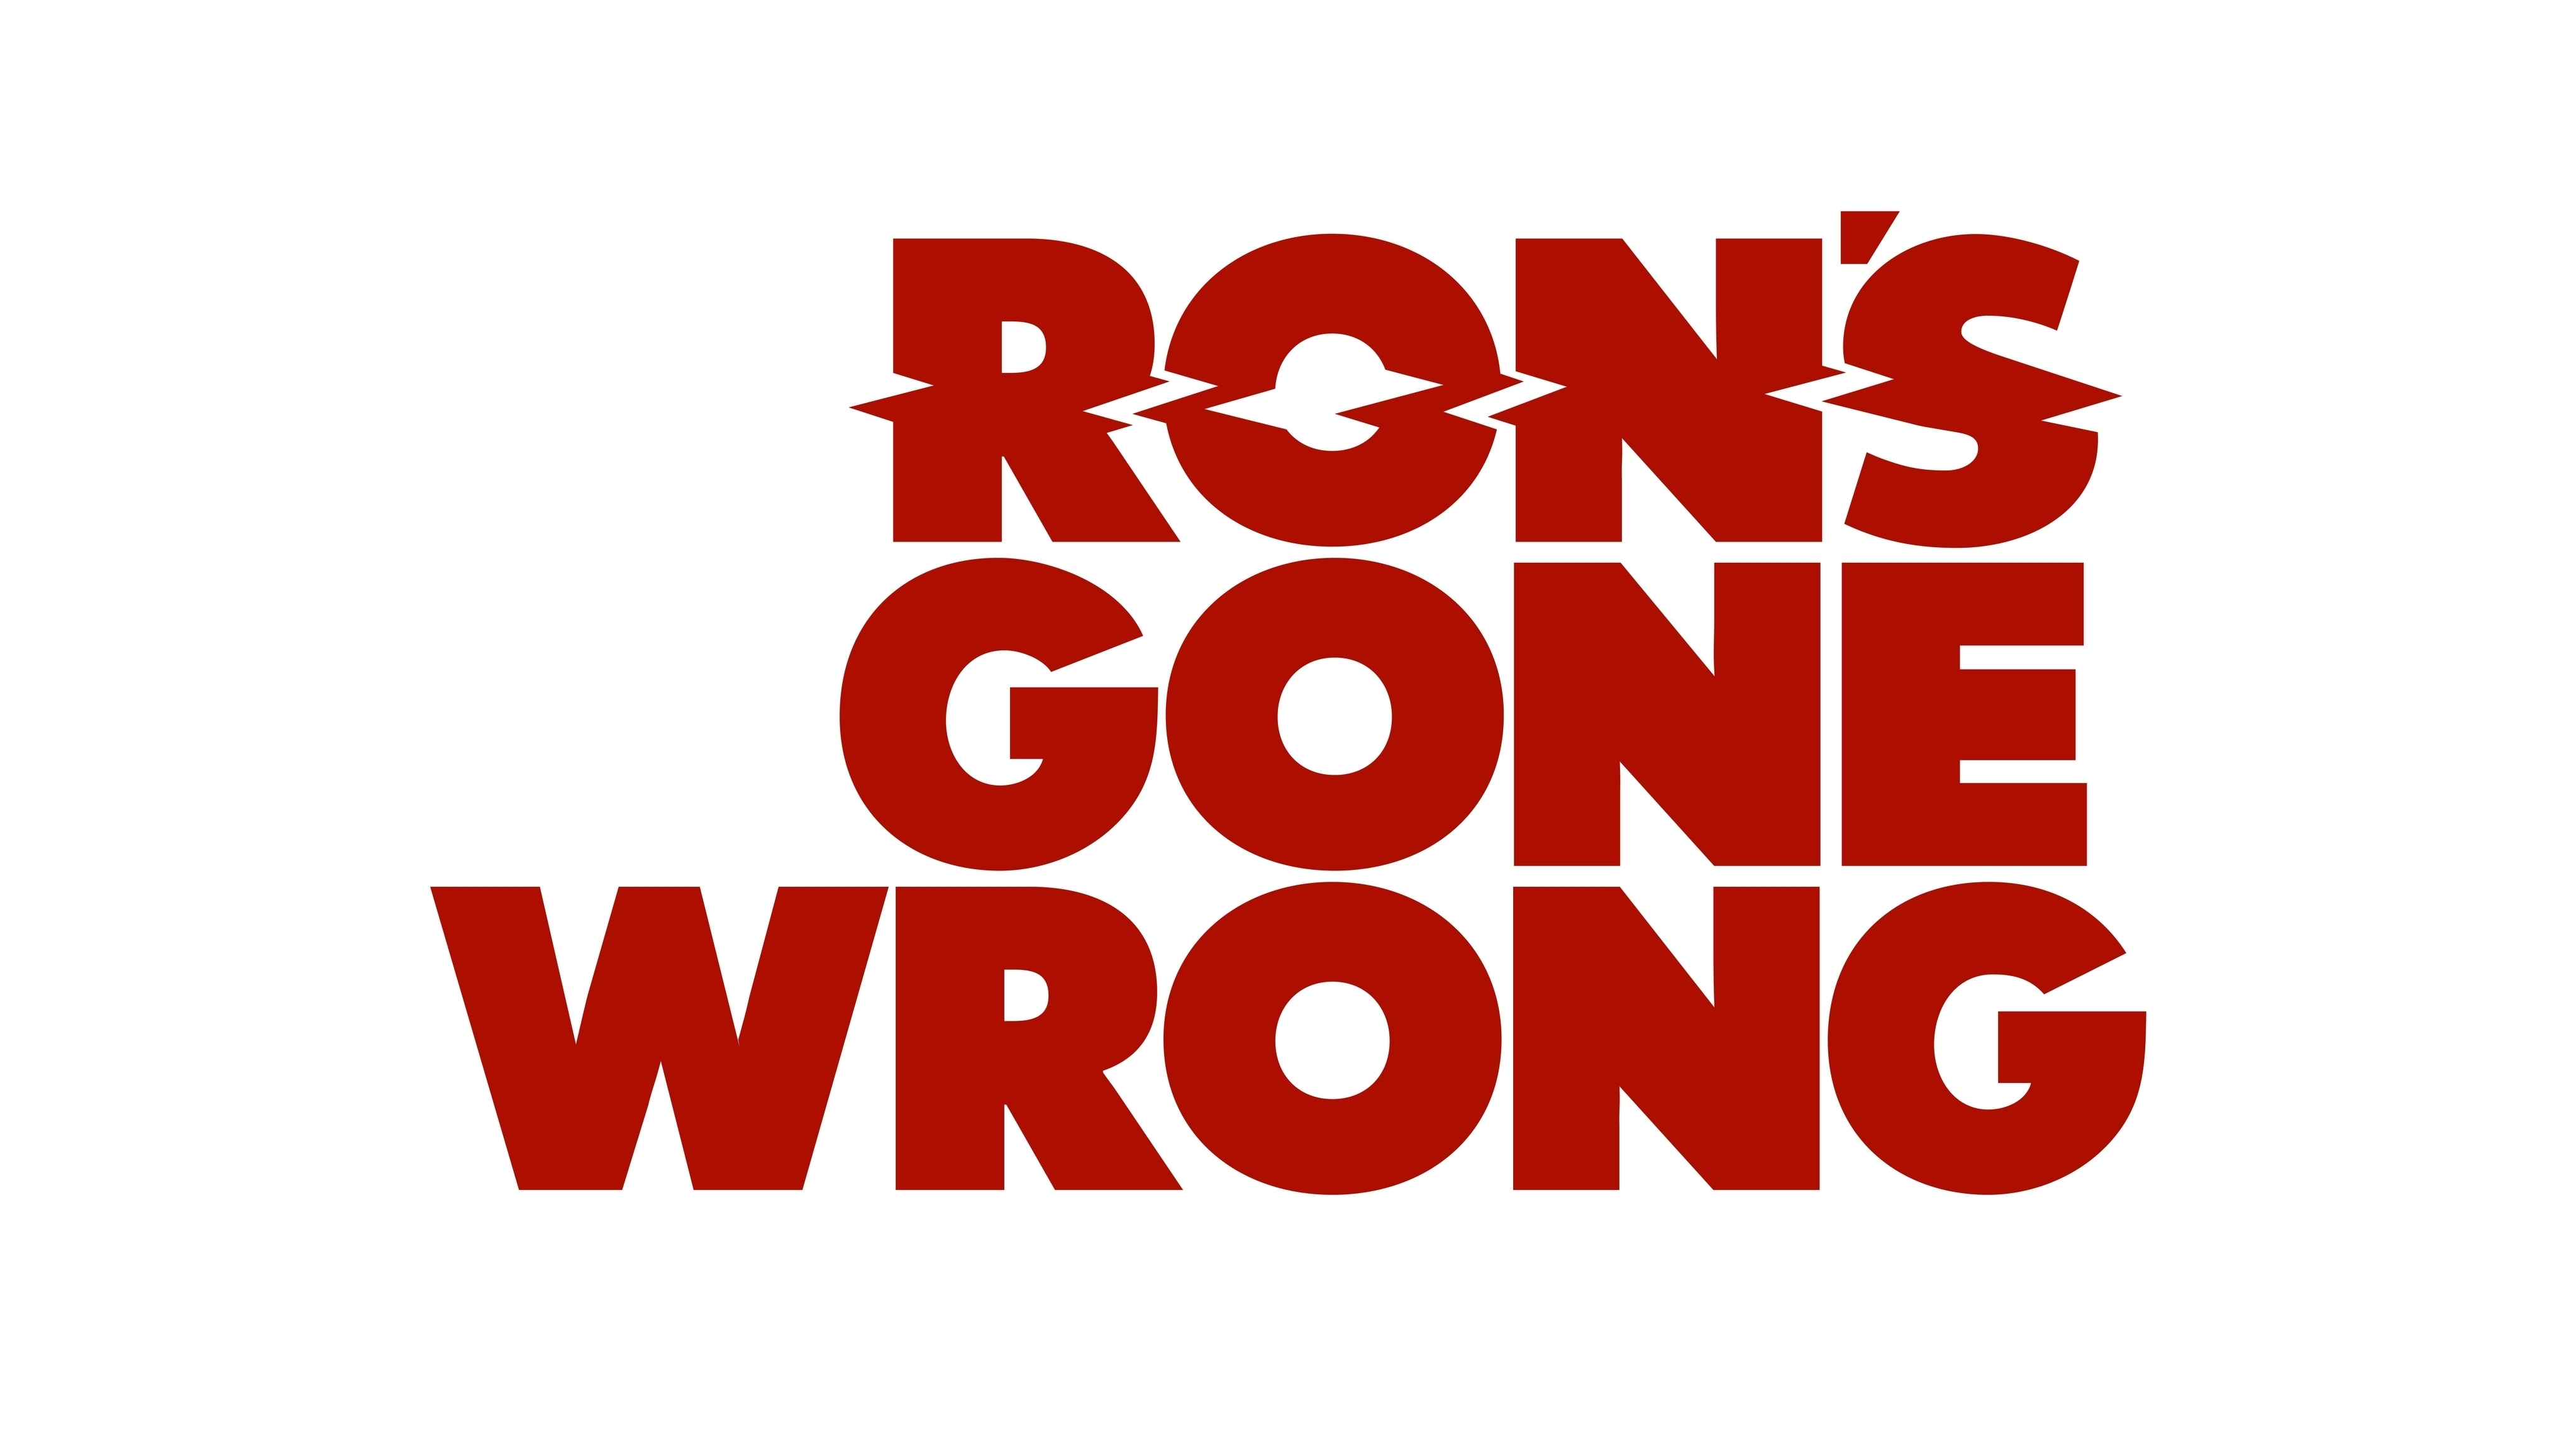 Ron's Gone Wrong Image